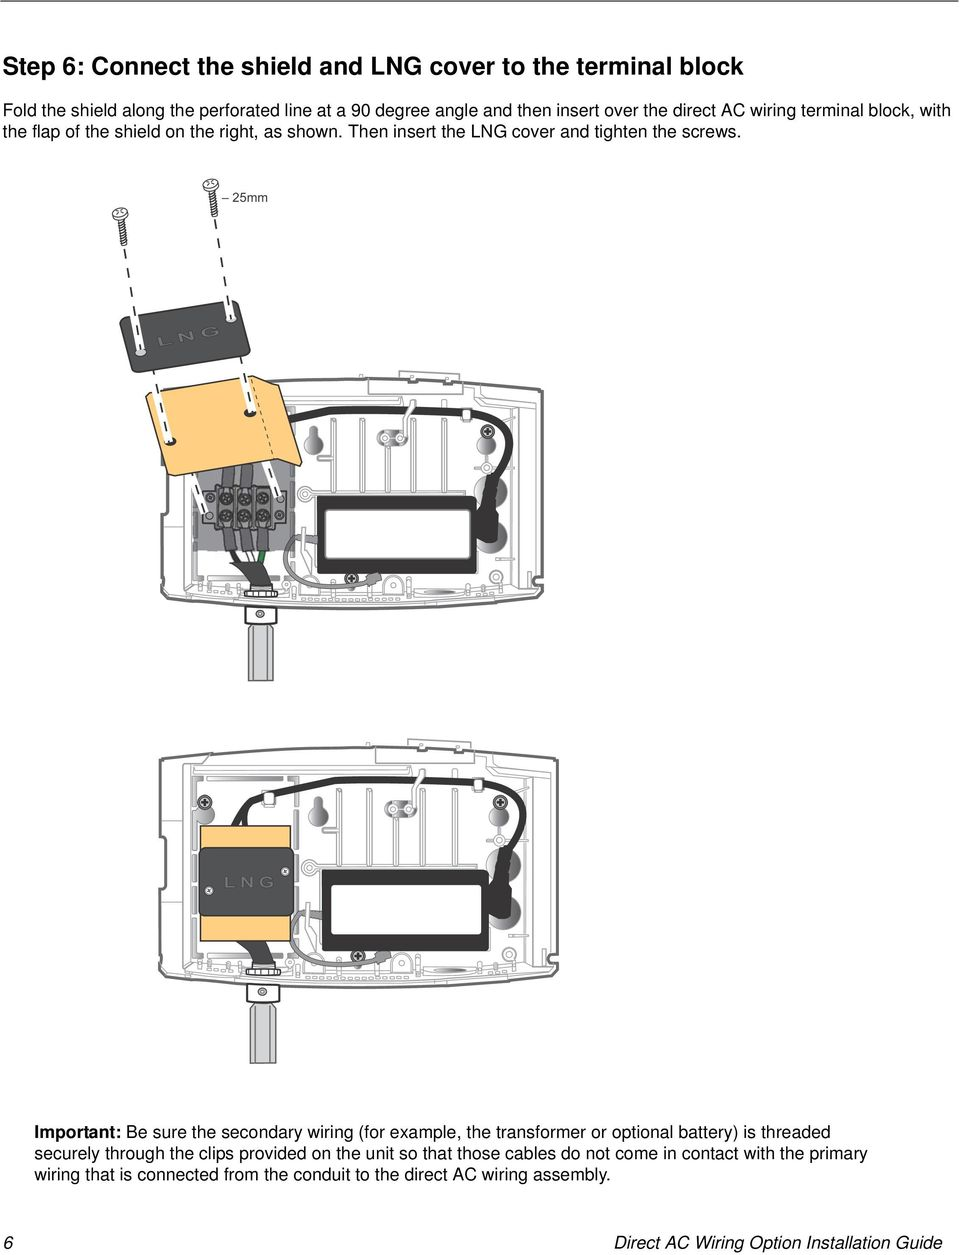 Direct Ac Wiring Option Installation Guide Pdf Transformer 25mm Important Be Sure The Secondary For Example Or Optional